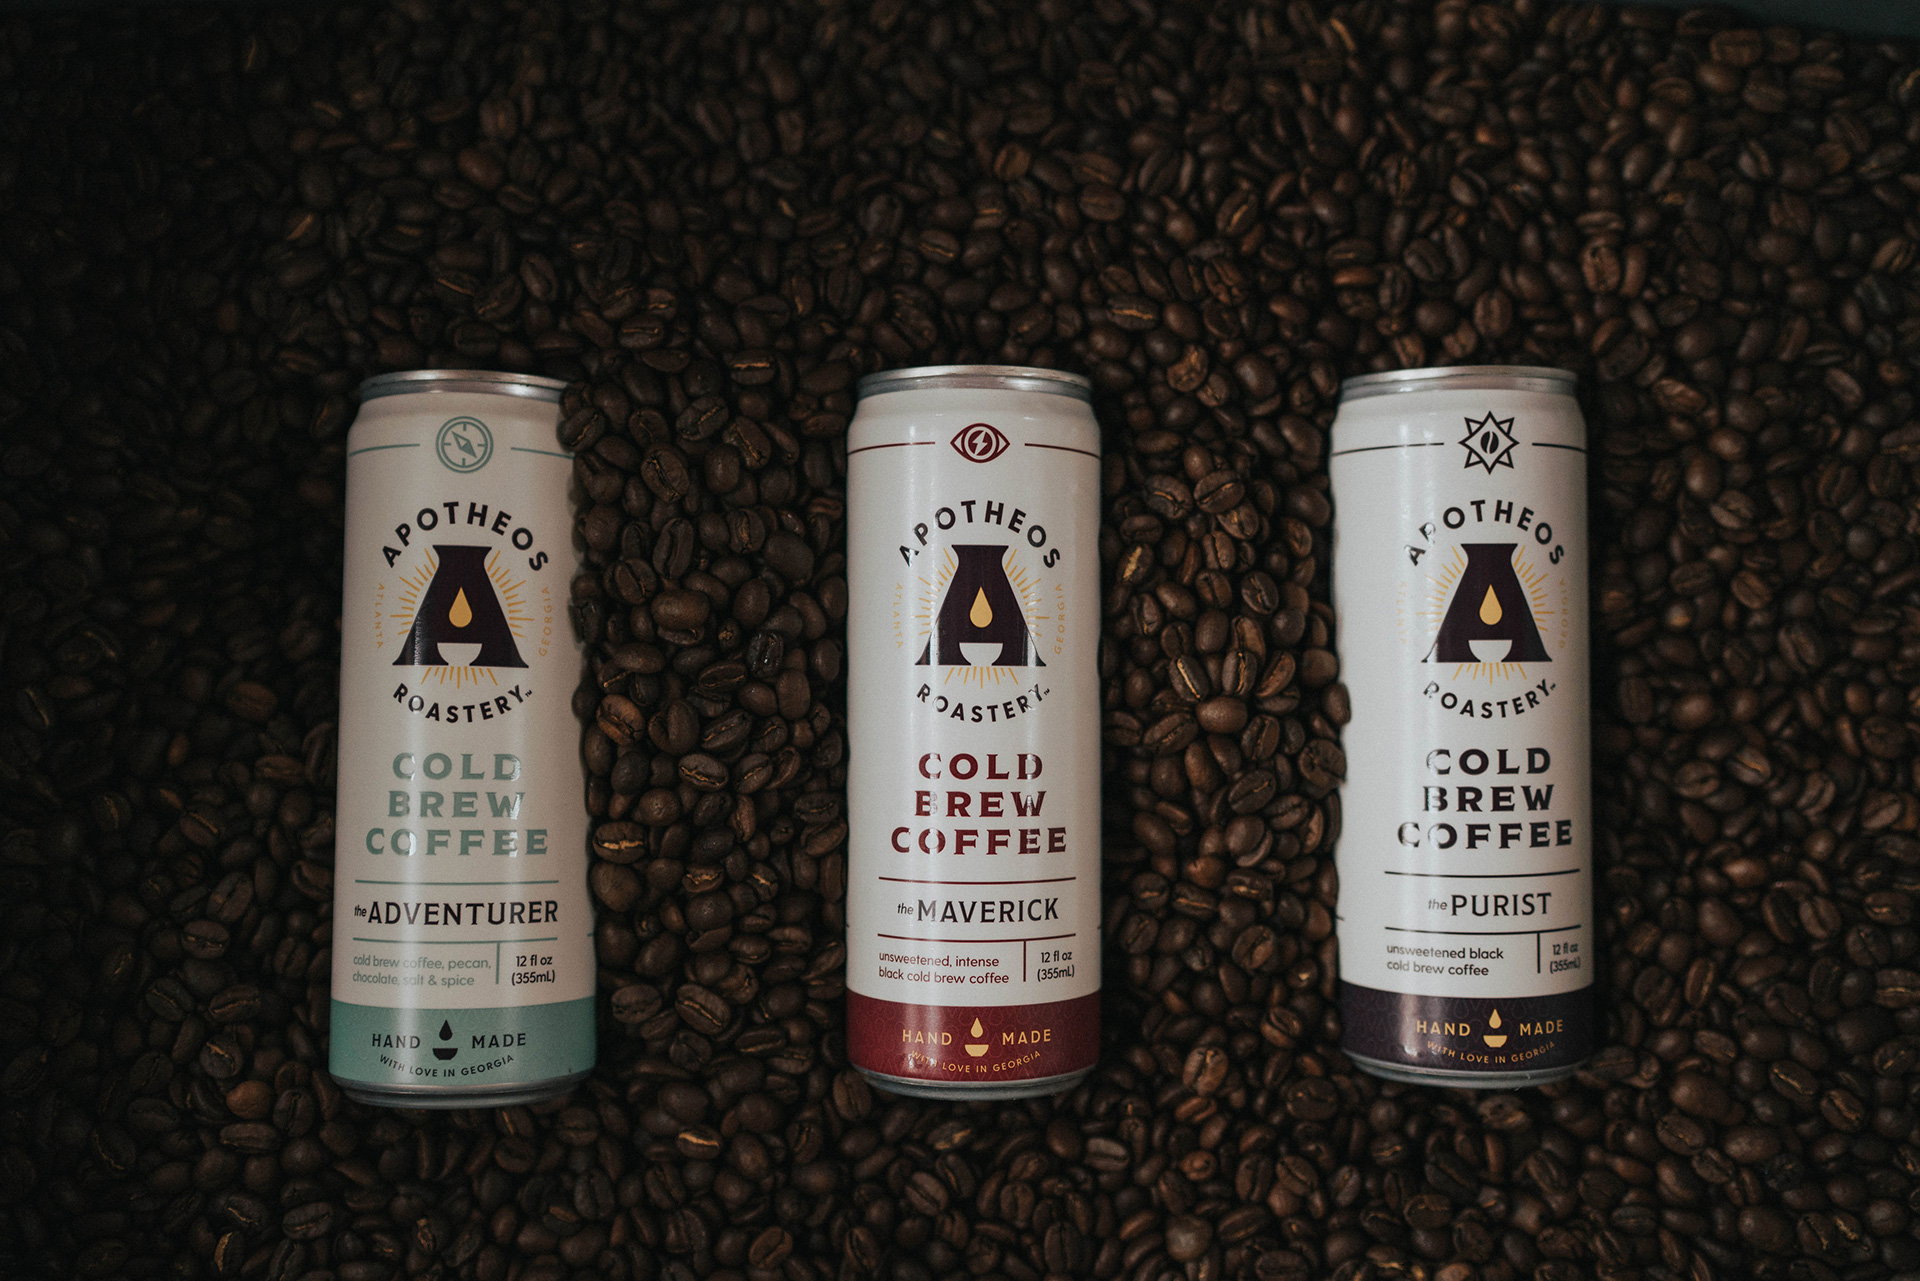 Apotheos coffee roastery branding and packaging design